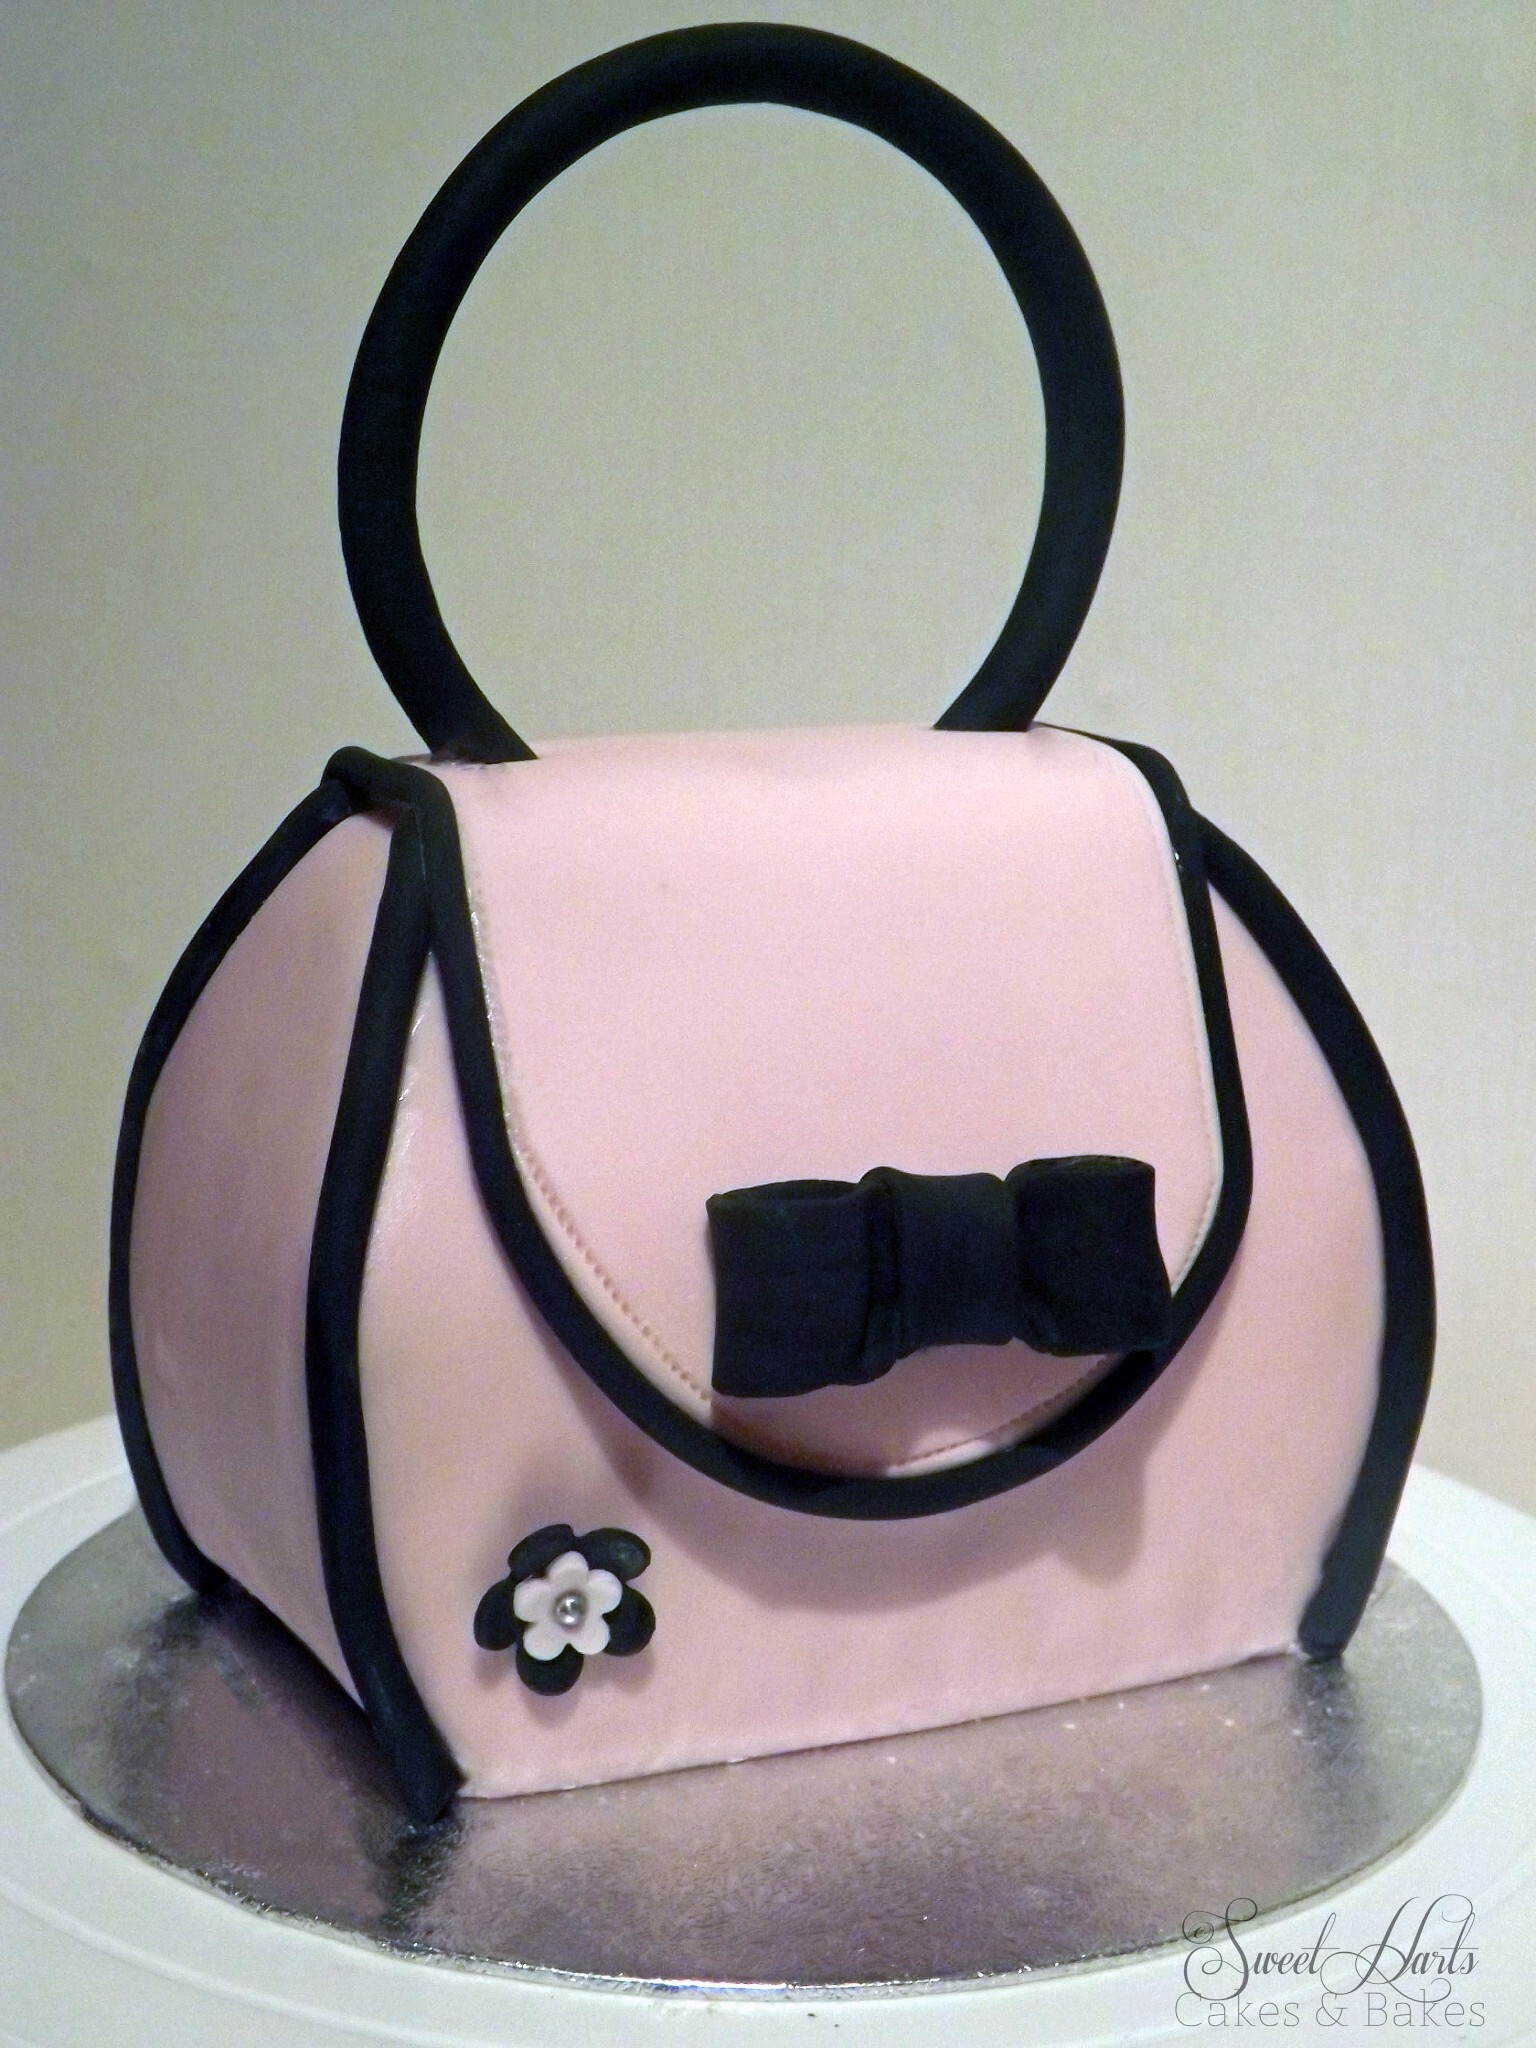 World Baking Day,Baking Brave and a Handbag Cake!